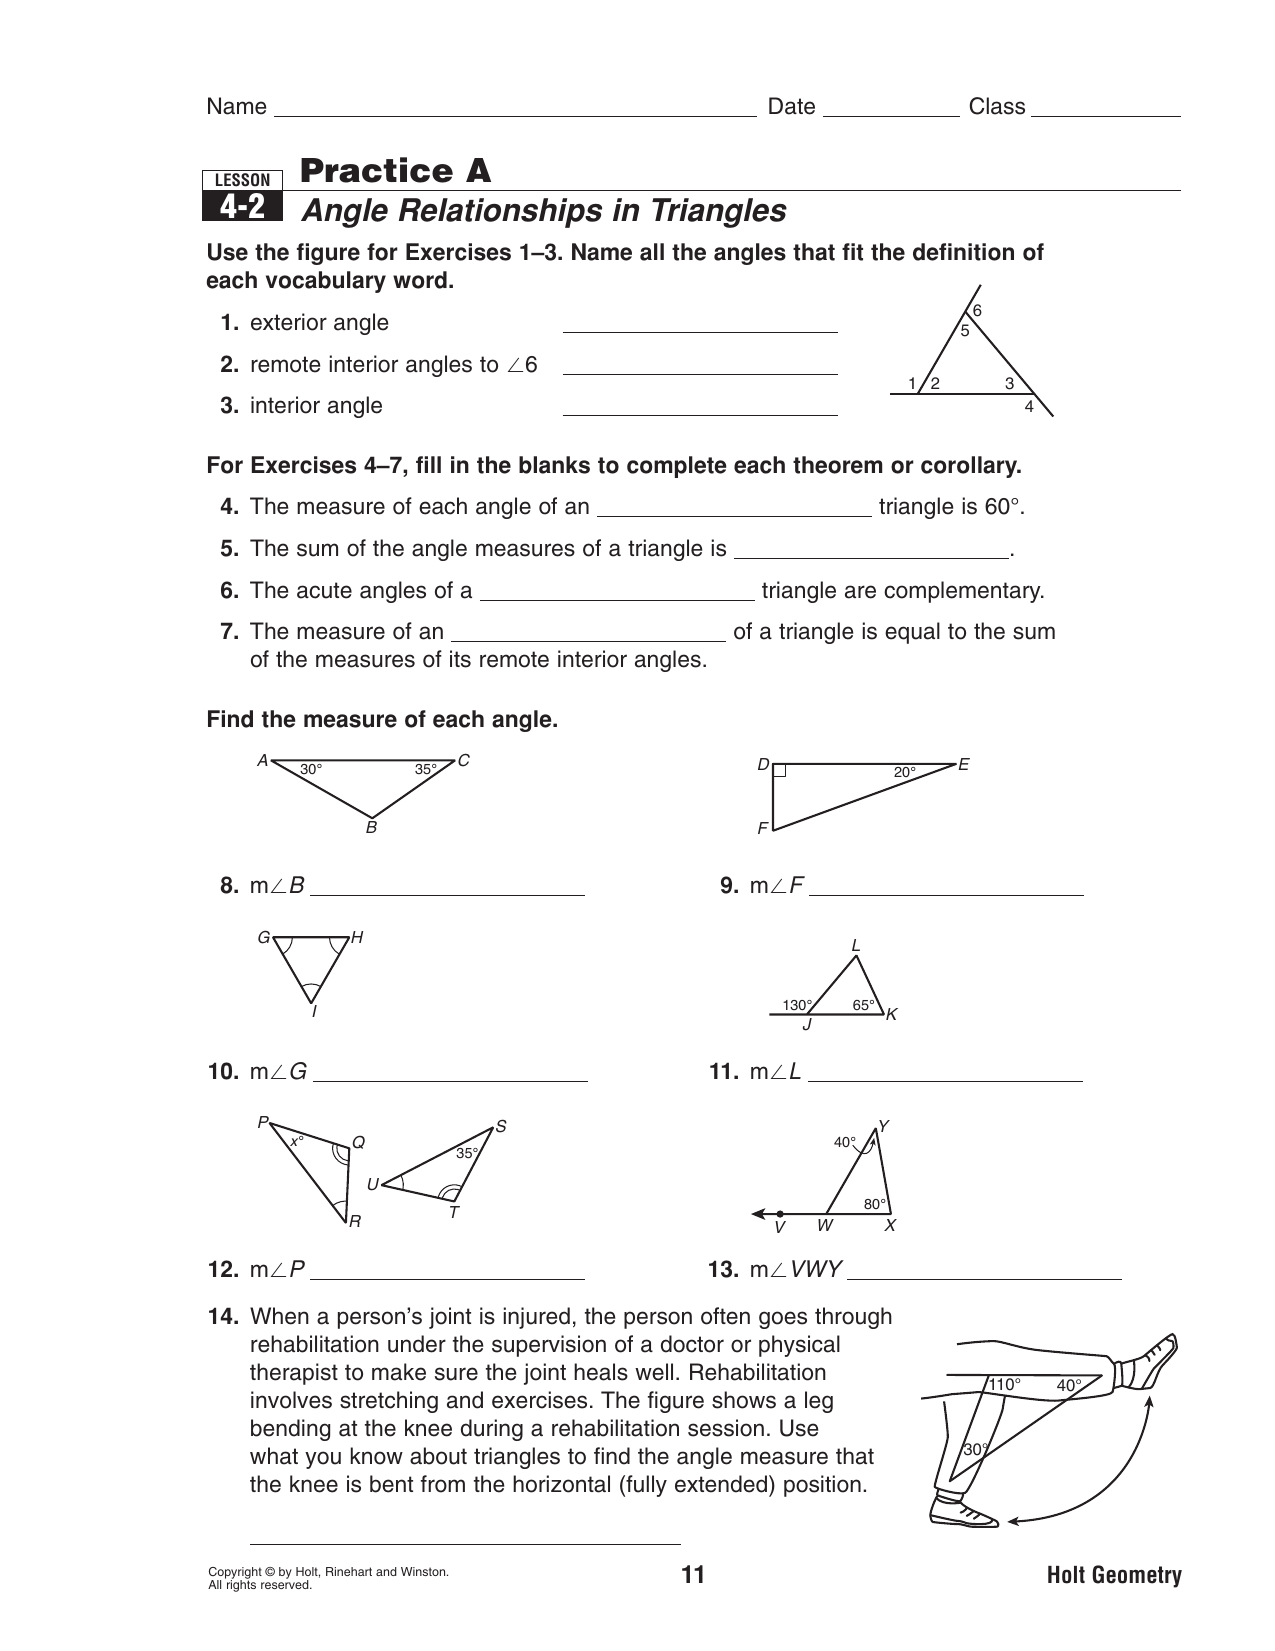 42 Practice A Angle Relationships In Triangles